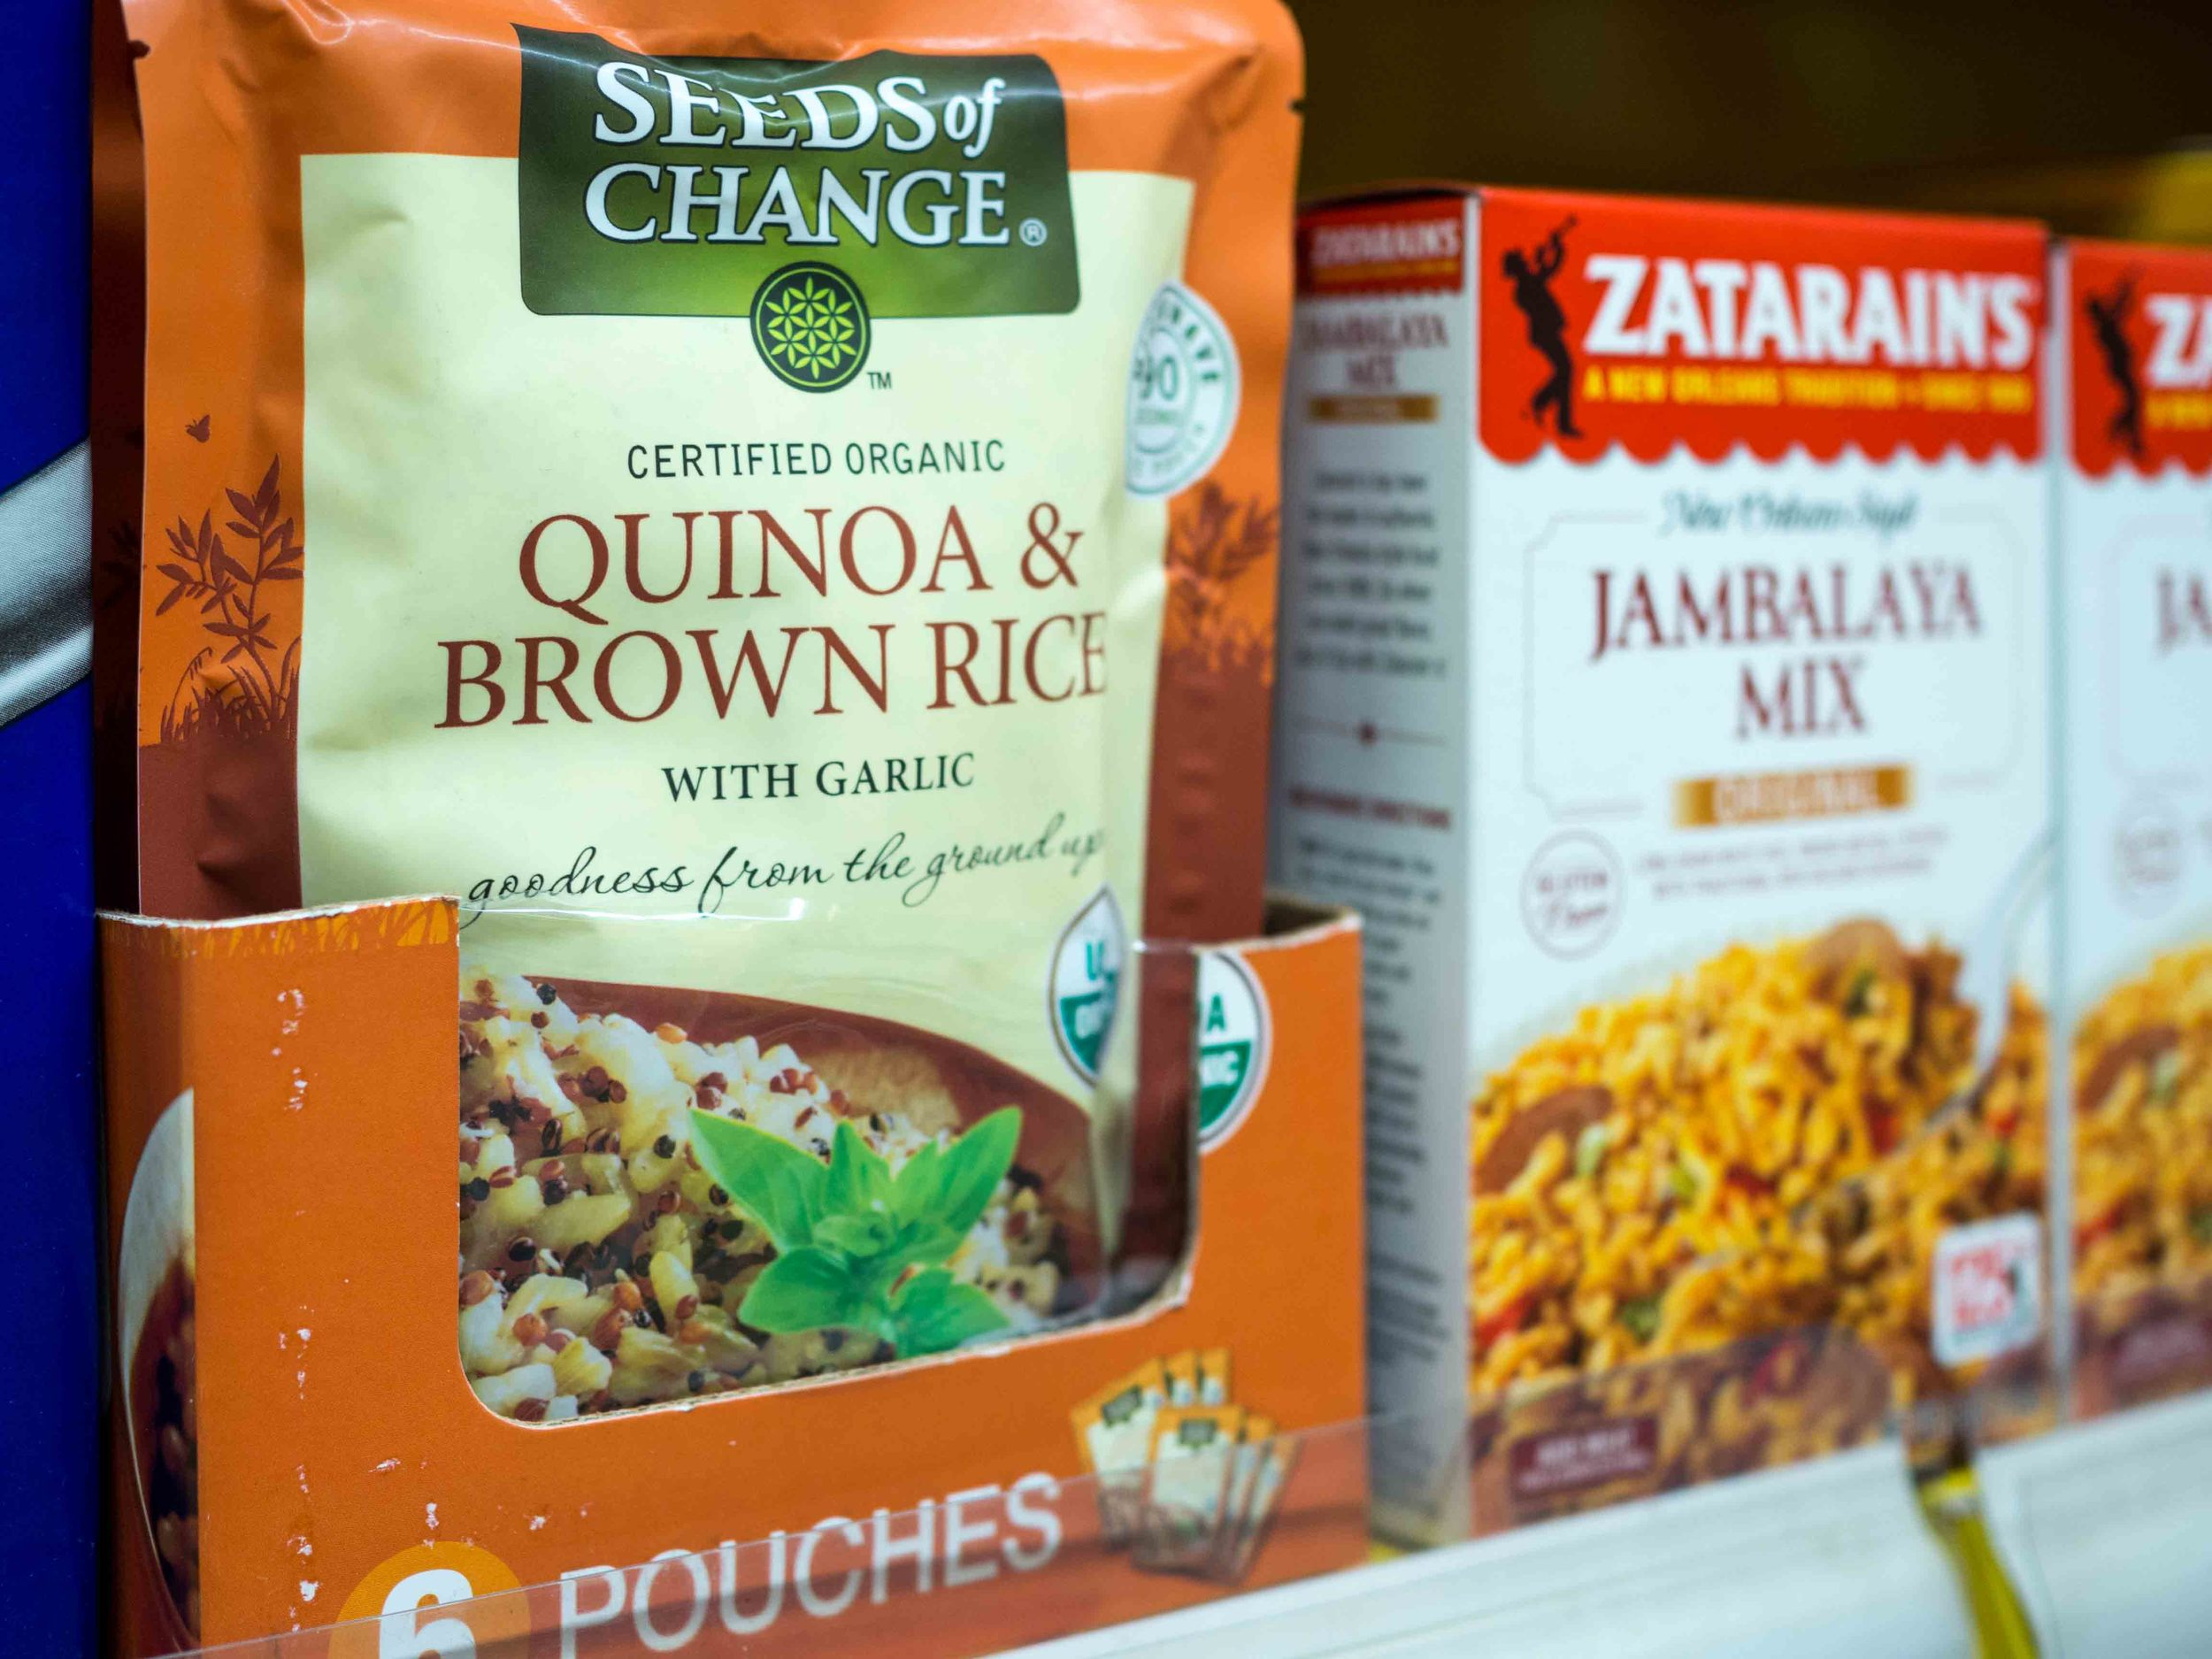 Seeds of Change Organic Quinoa & Brown Rice with Garlic